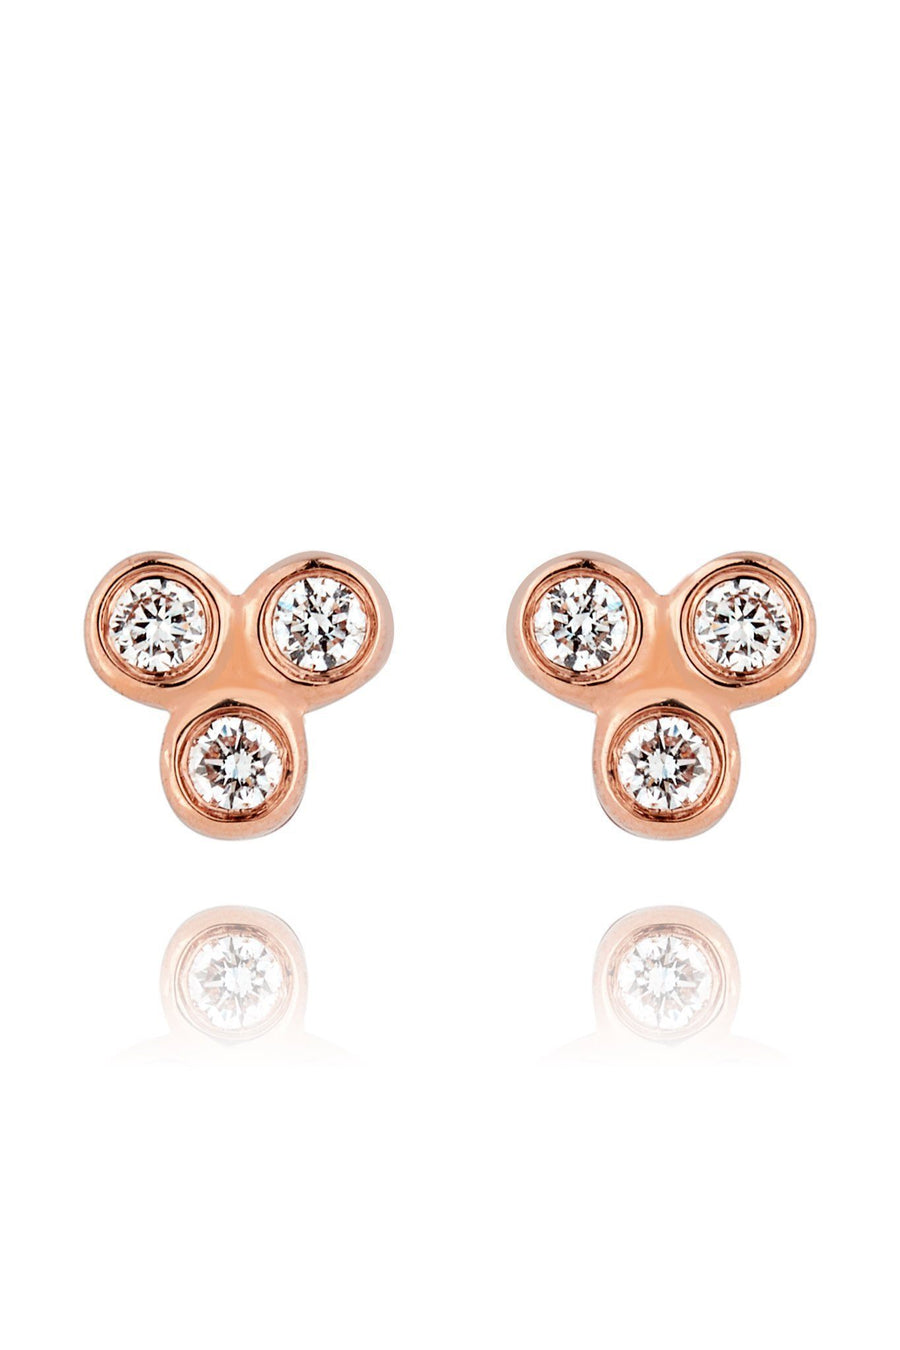 Trinity Diamond Mini Stud Earrings Earrings Lark and Berry Pair Rose Gold